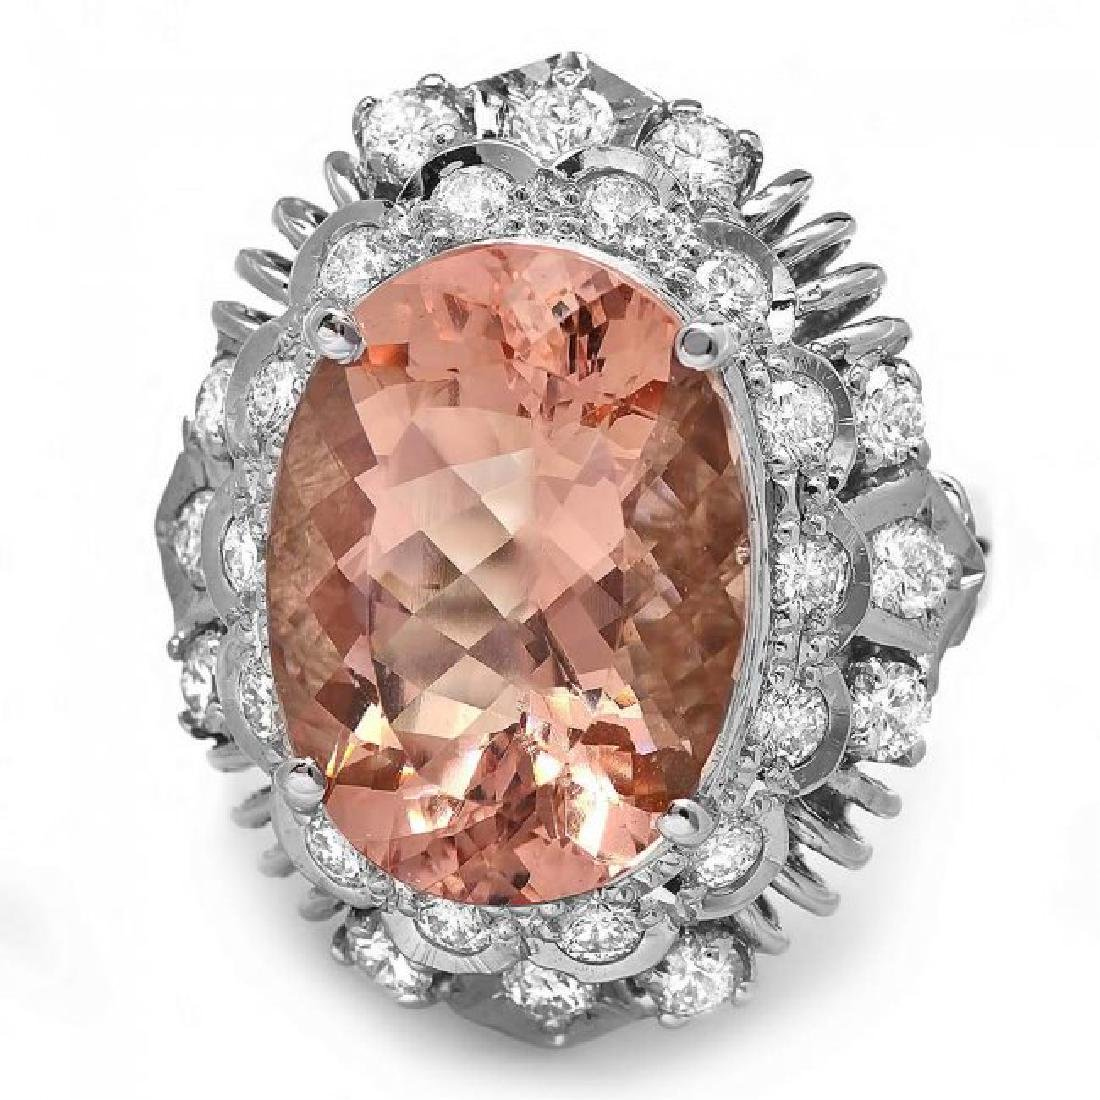 14k Gold 8.50ct Morganite 1.40ct Diamond Ring - 3